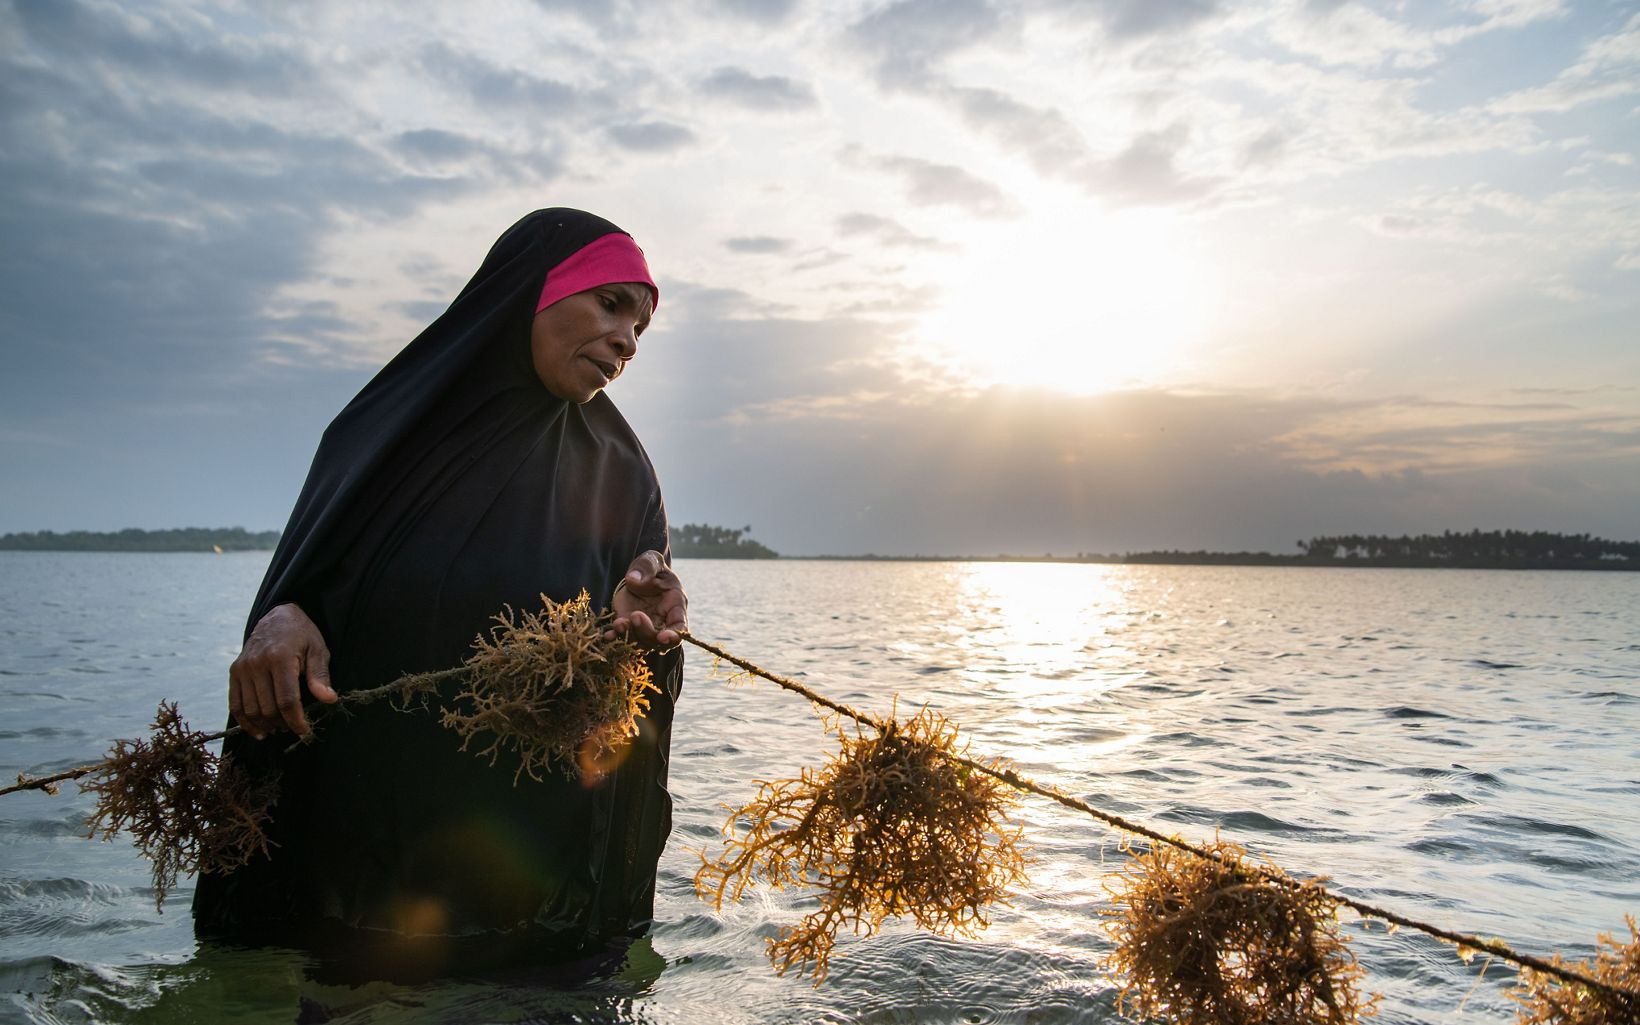 a woman holding seaweed in the ocean